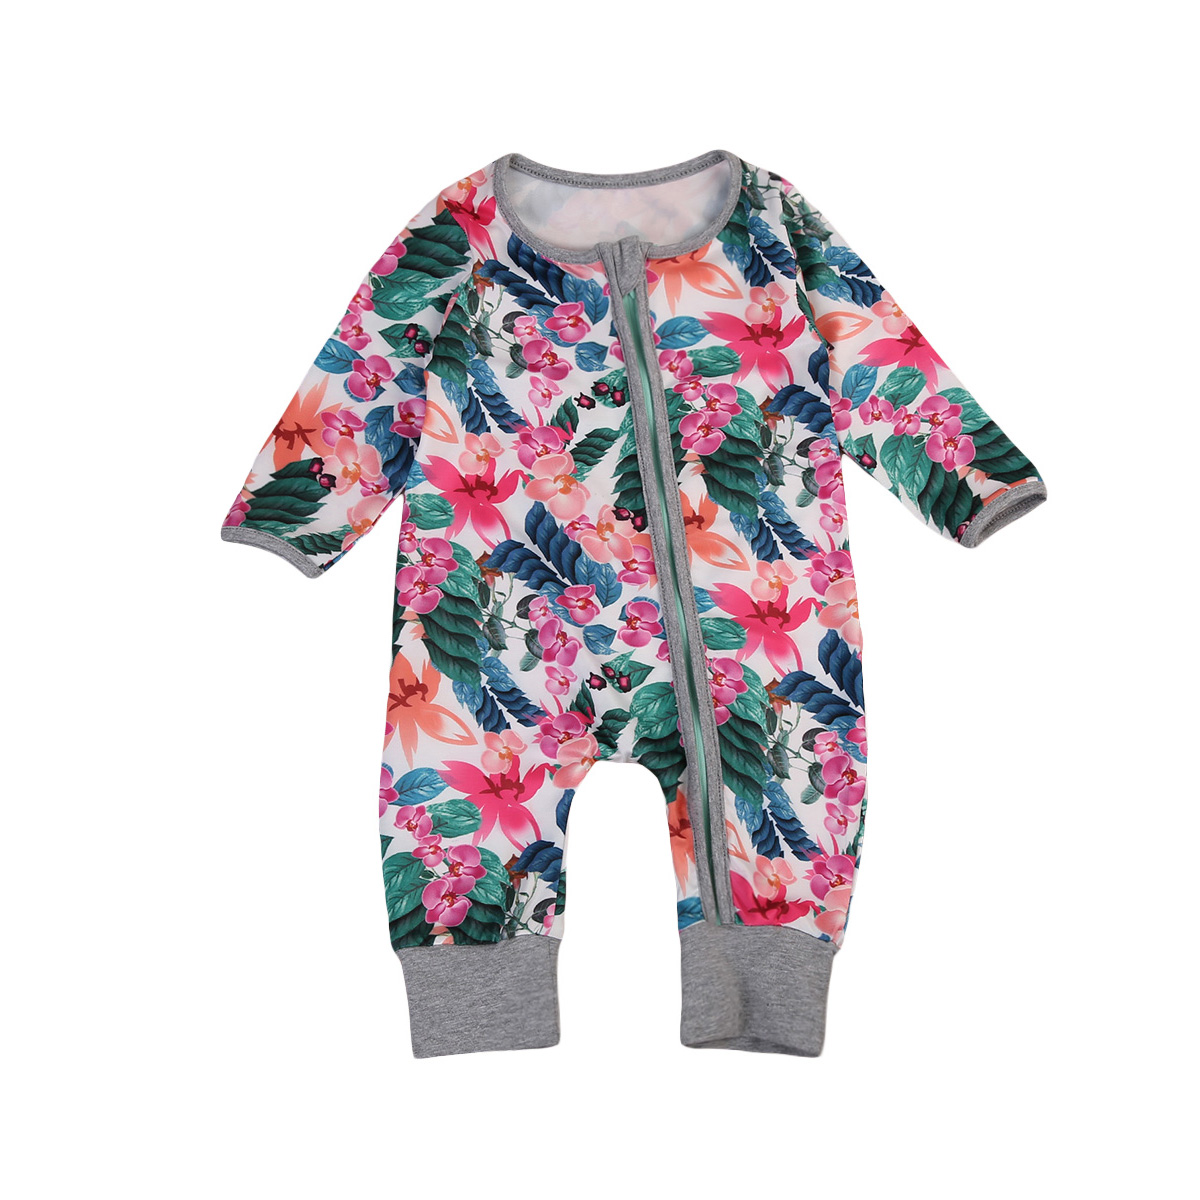 Pudcoco 0-24M Newborn Baby Girls Floral Long Sleeve Romper Zipper Jumpsuit Pants Clothes One-pieces